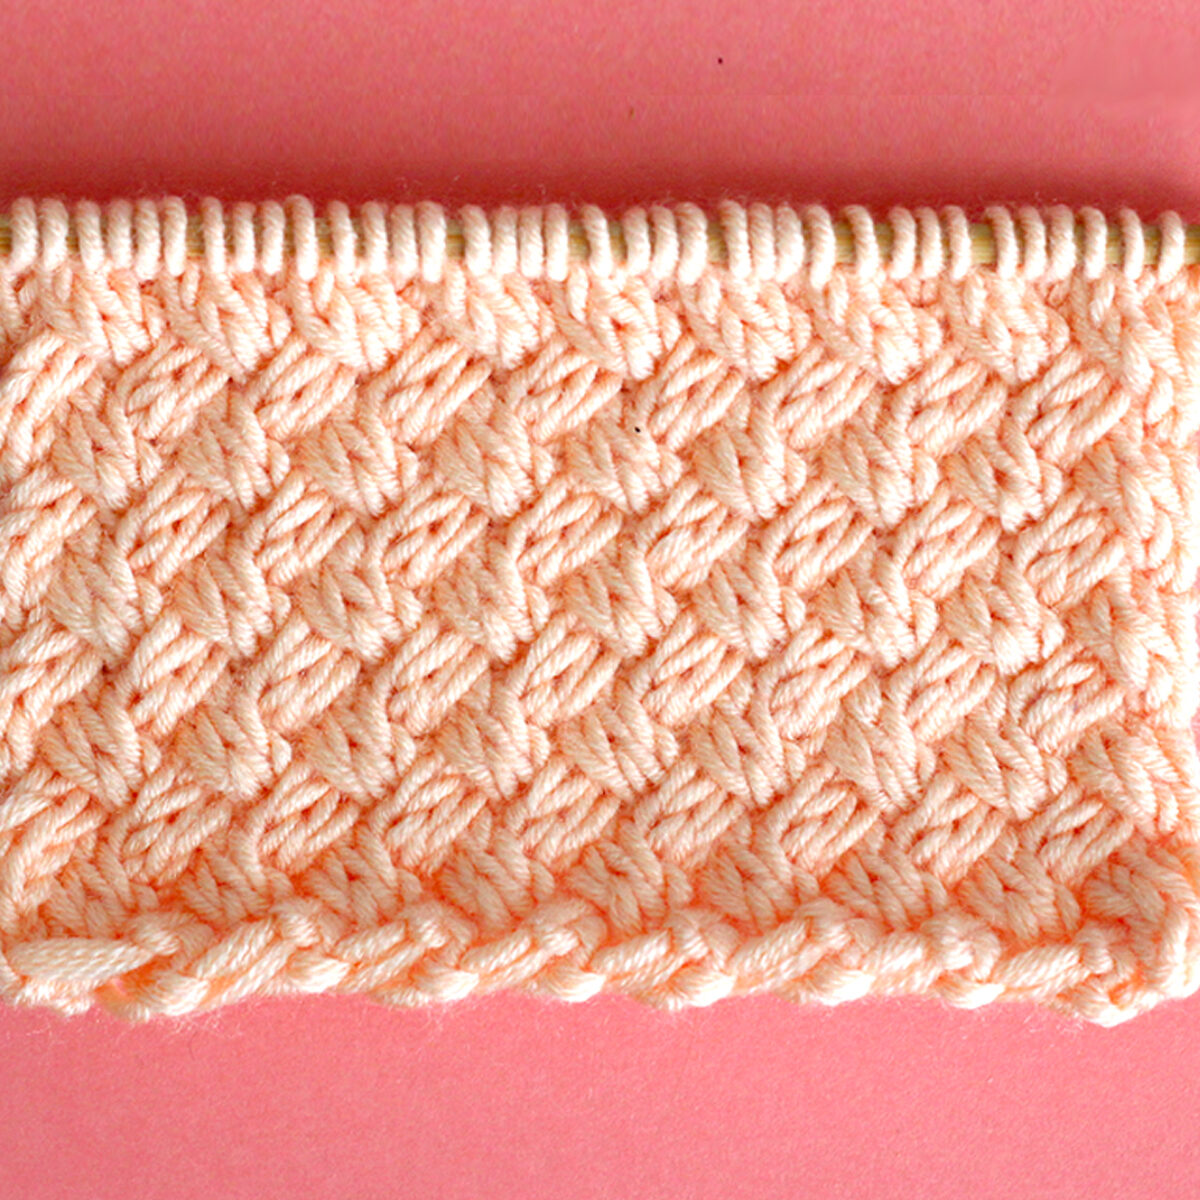 Diagonal Basket Weave Cable Knit Stitch Pattern texture in peach color yarn on knitting needle.